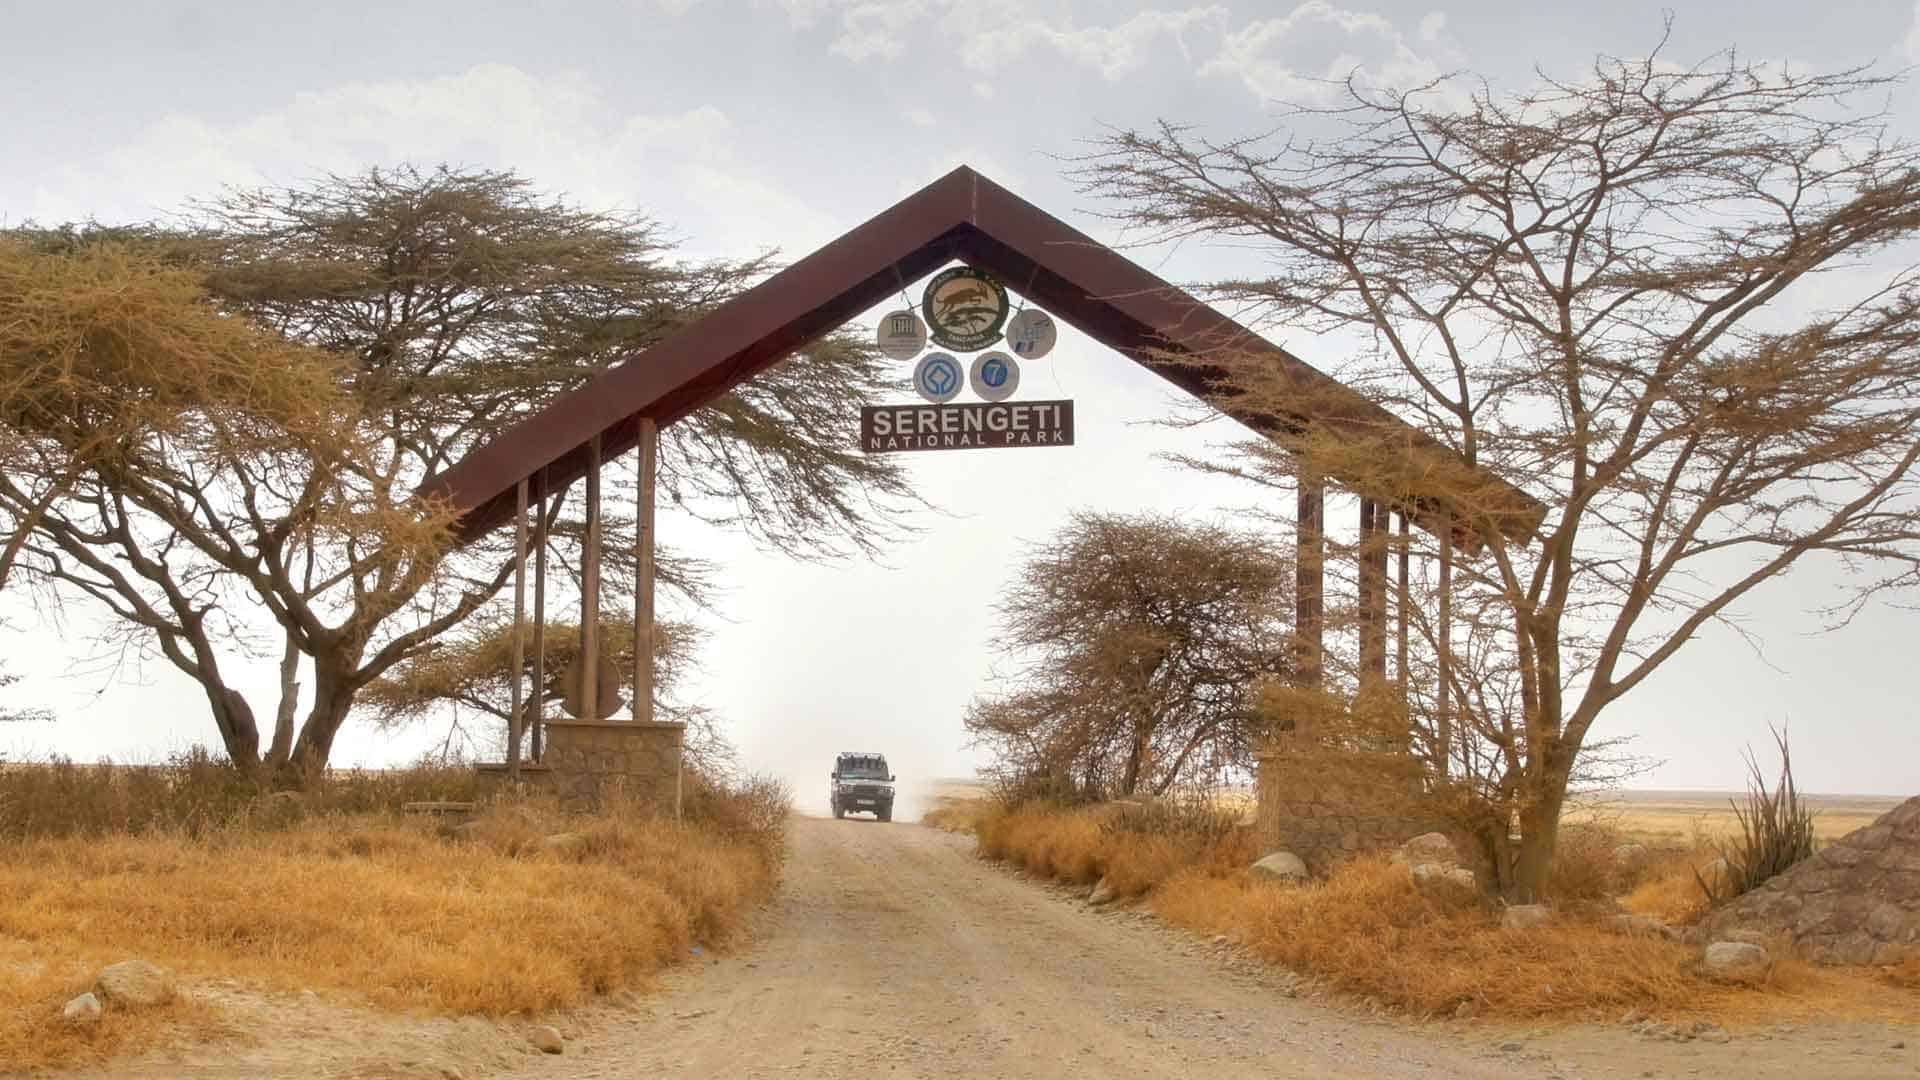 Enntrance to Serengeti National Park on Serengeti Safari